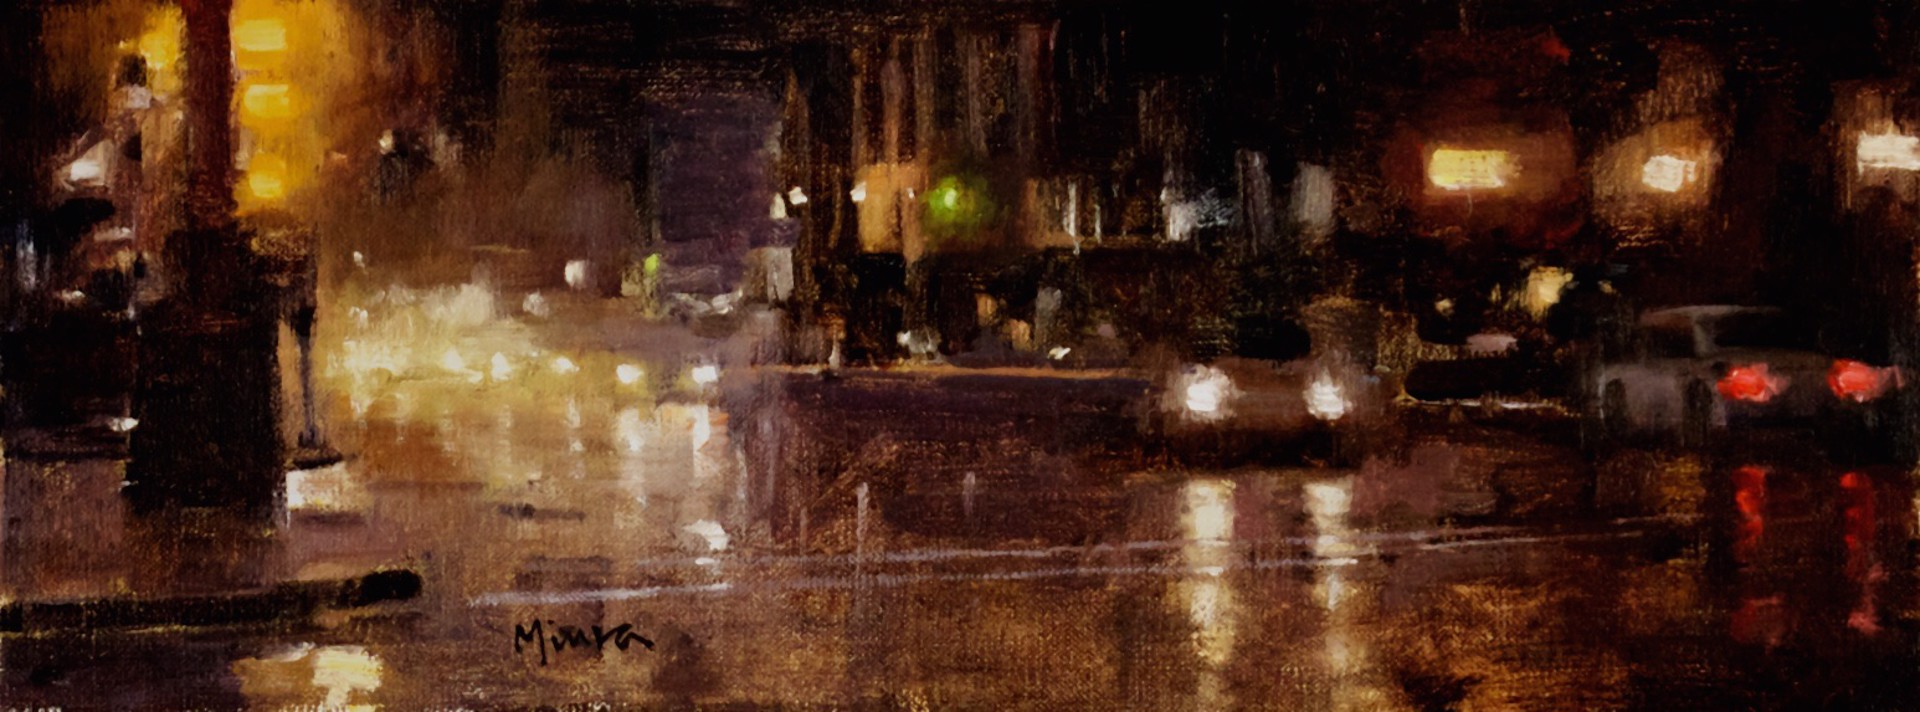 Rainy Night, Downtown Chicago by Terry Miura